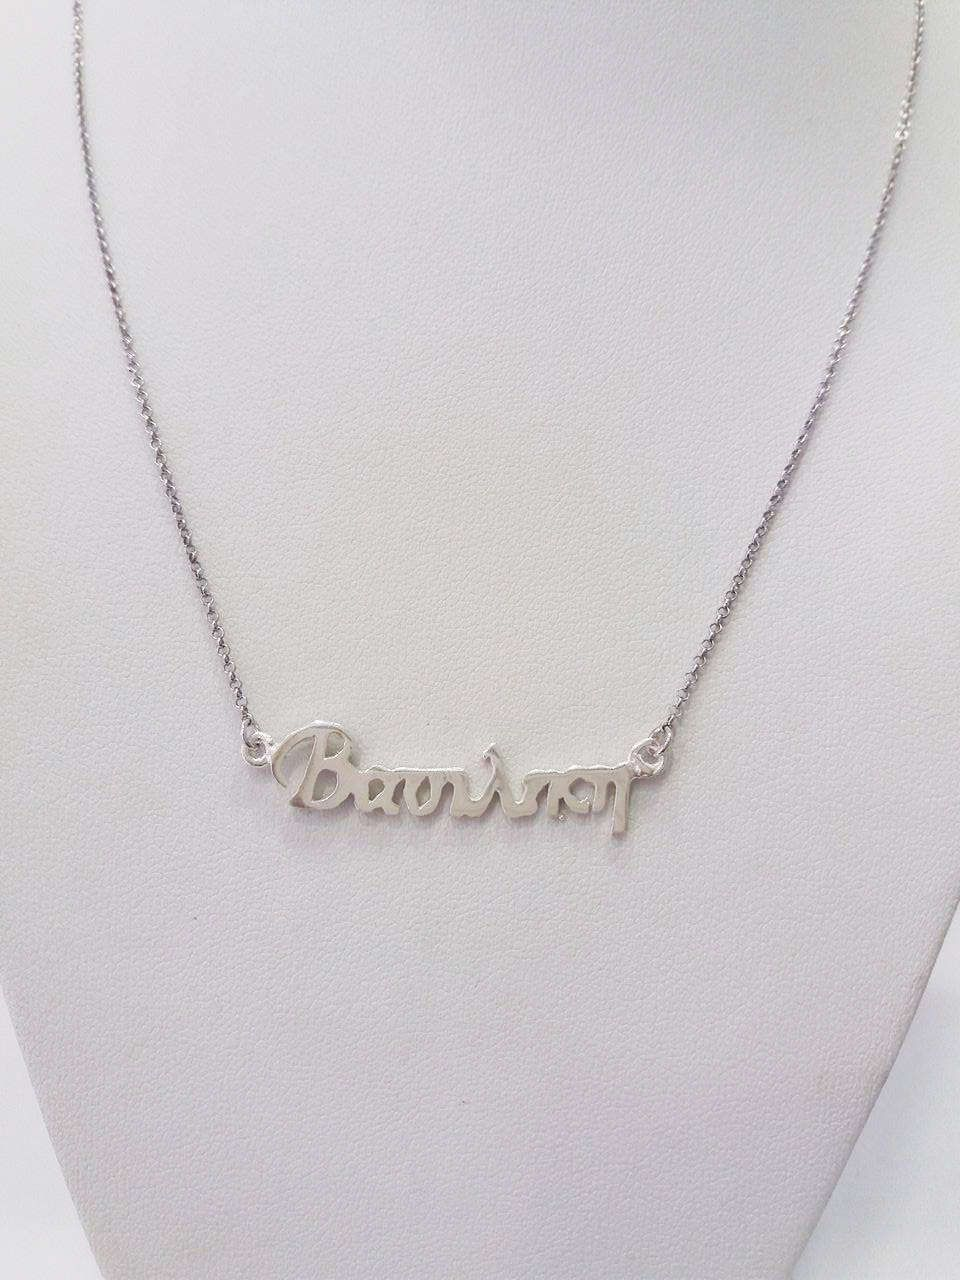 Name Necklace / Personalised Necklaces / Custom Necklaces / Letter ...